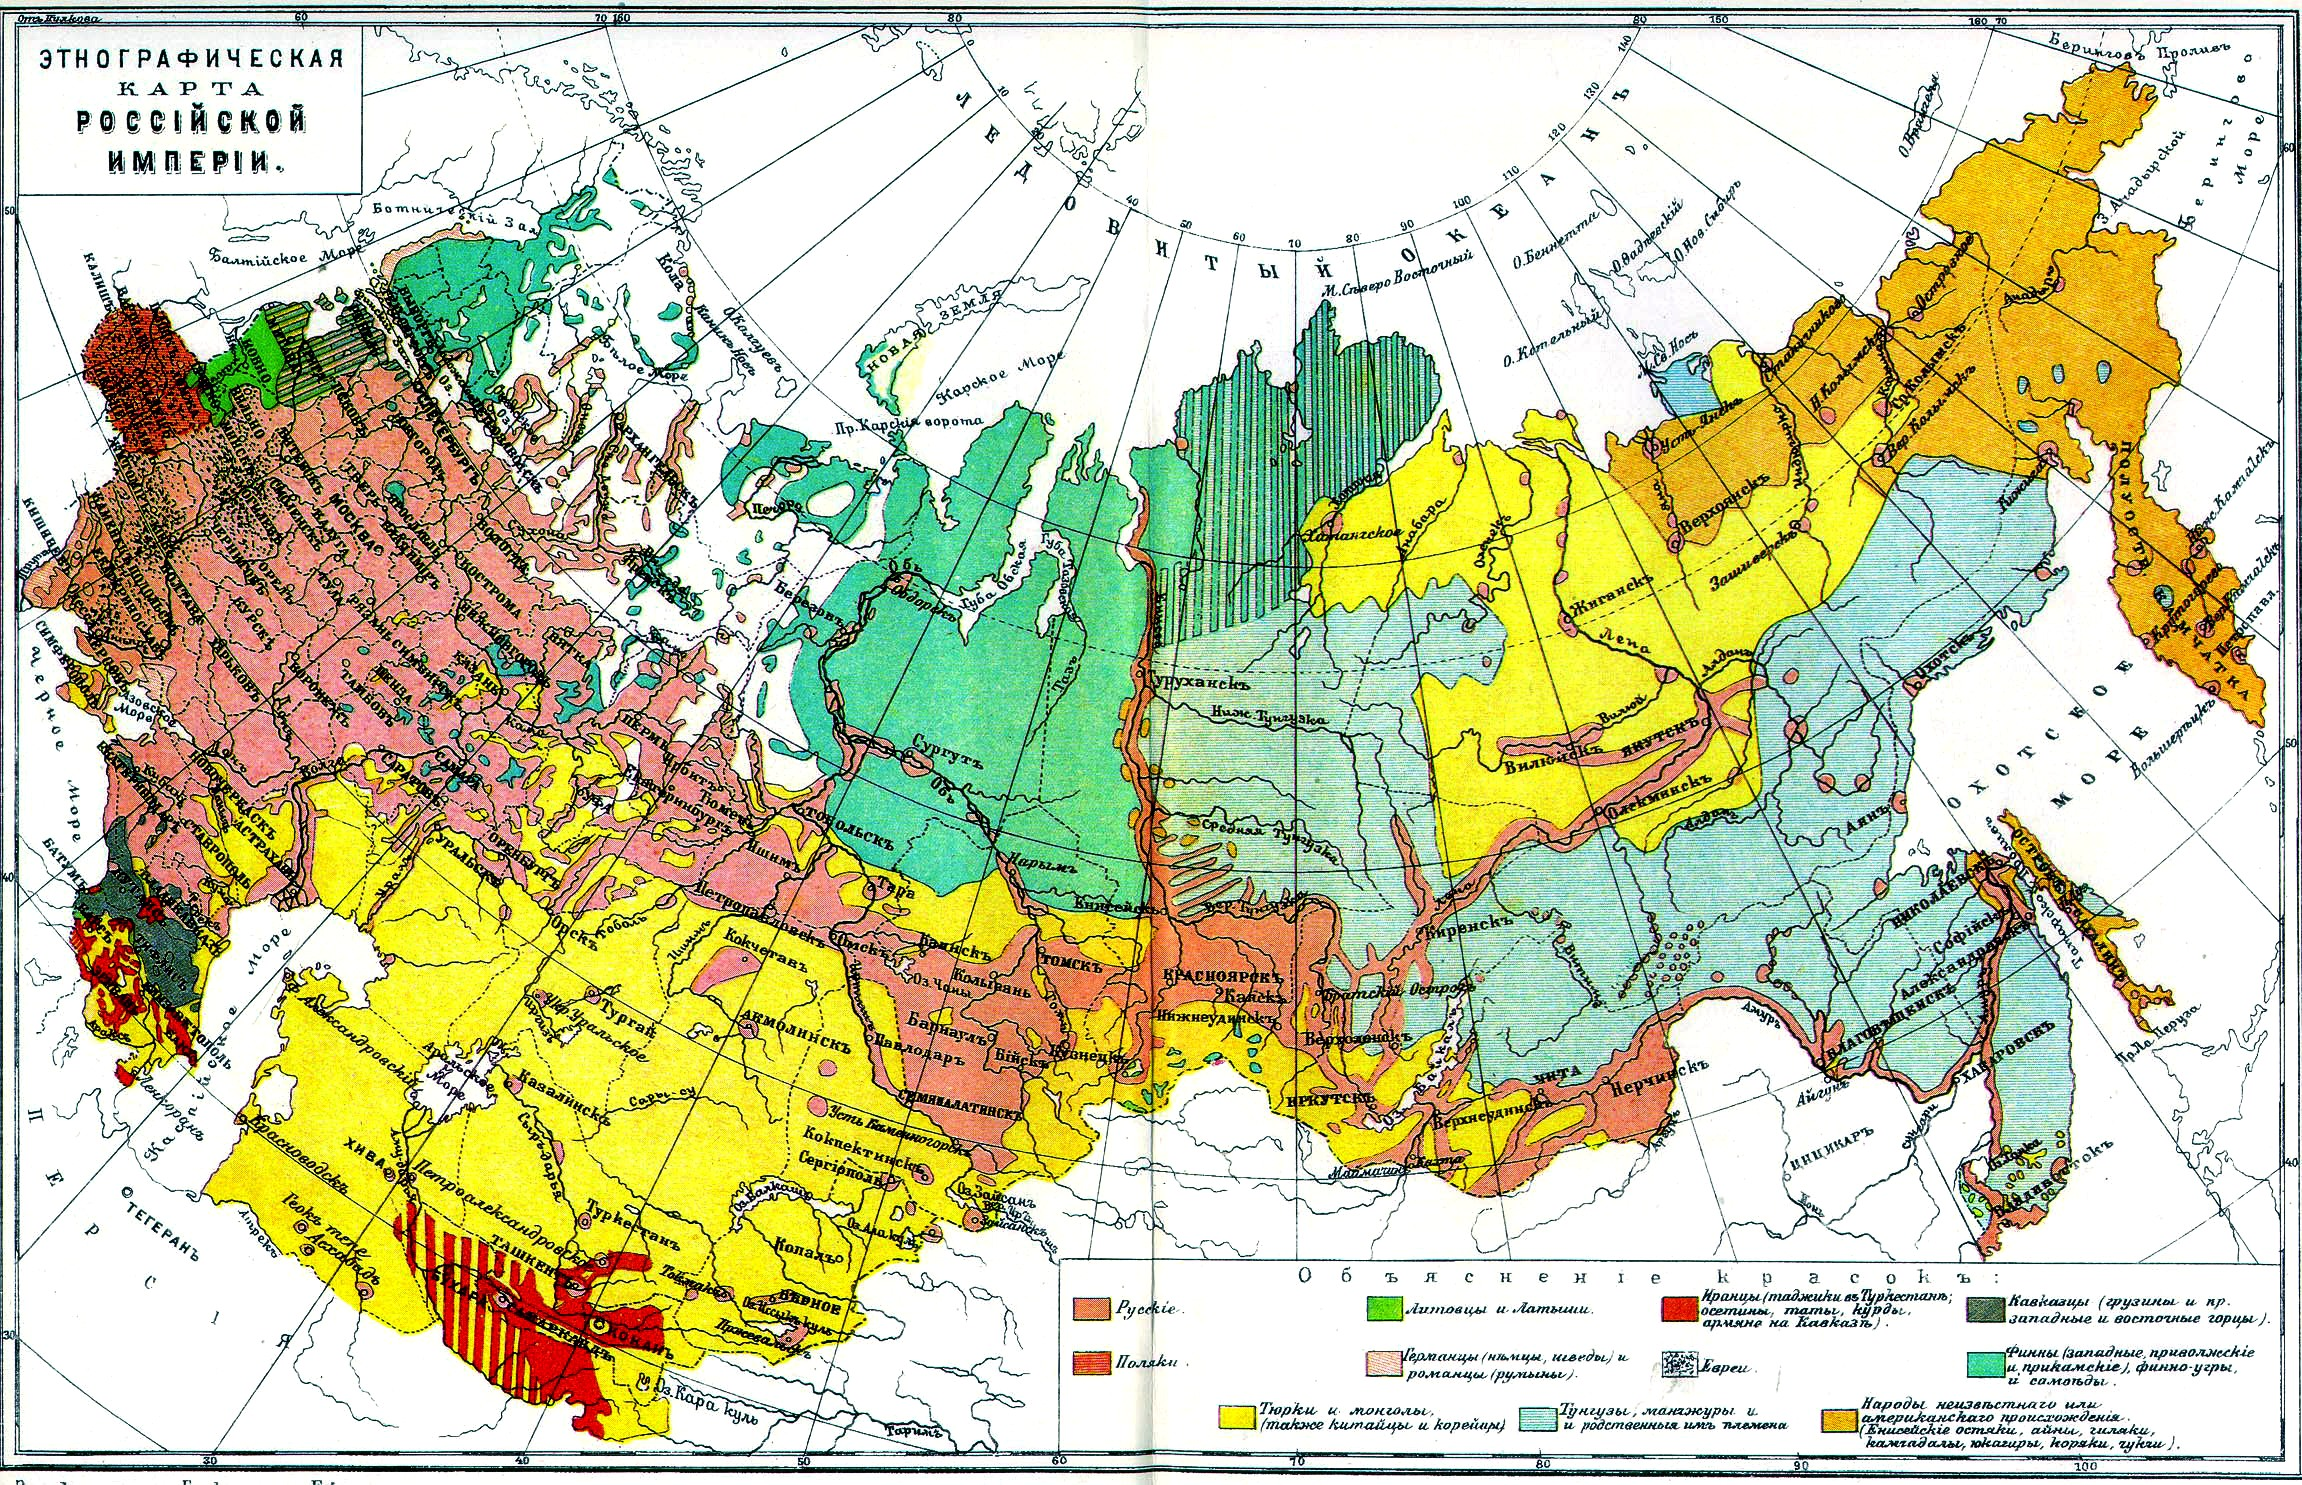 http://dic.academic.ru/pictures/wiki/files/69/Ethnographic_map_of_Russian_Empire.jpg